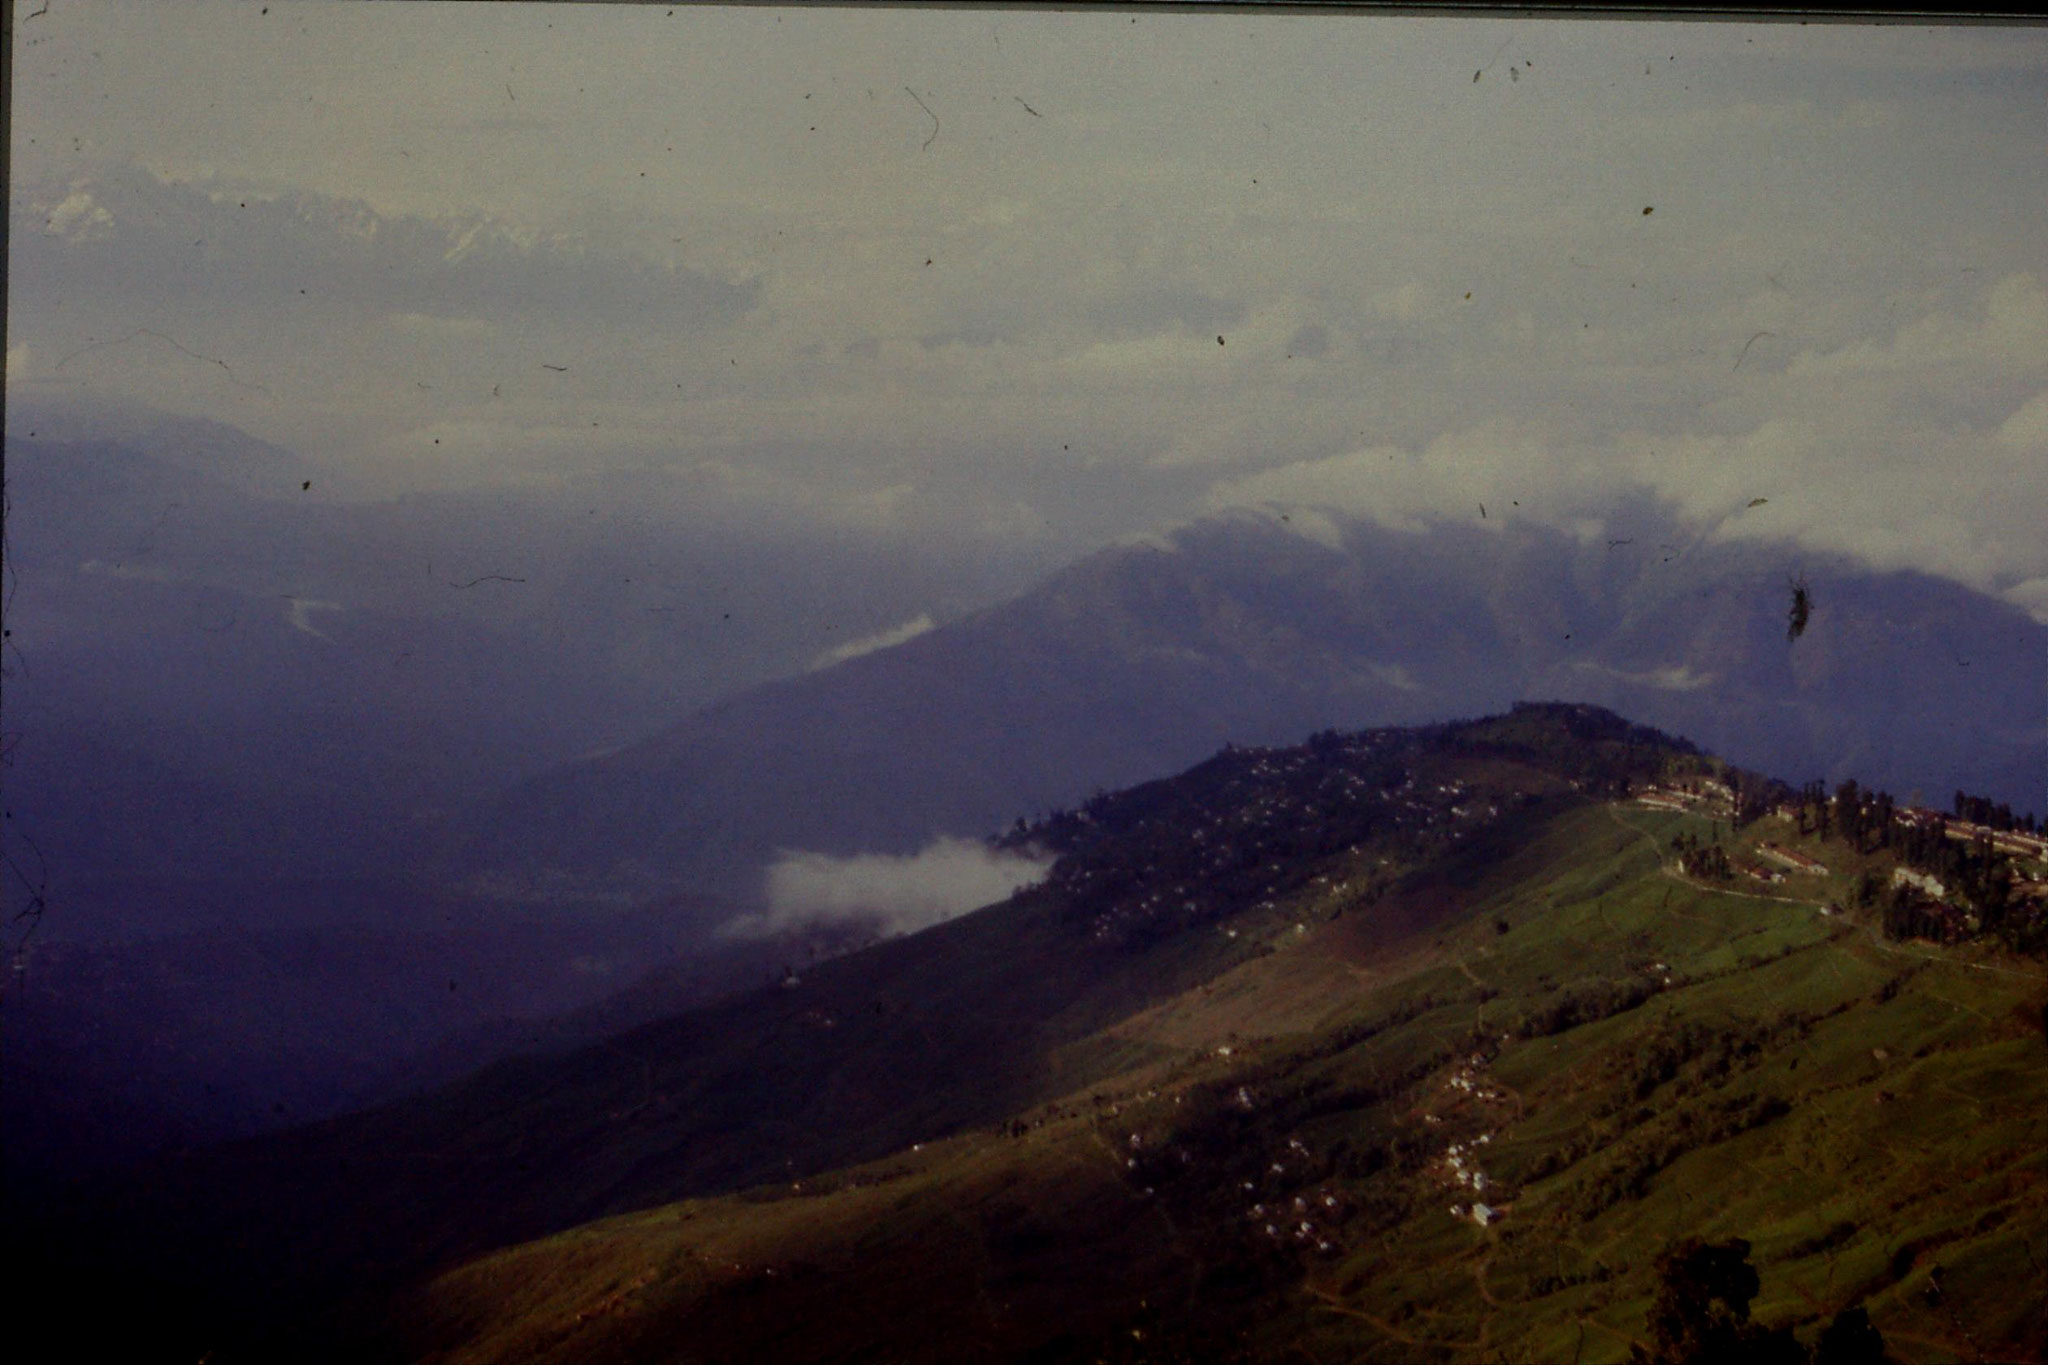 3/5/1990: 4: Darjeeling view north